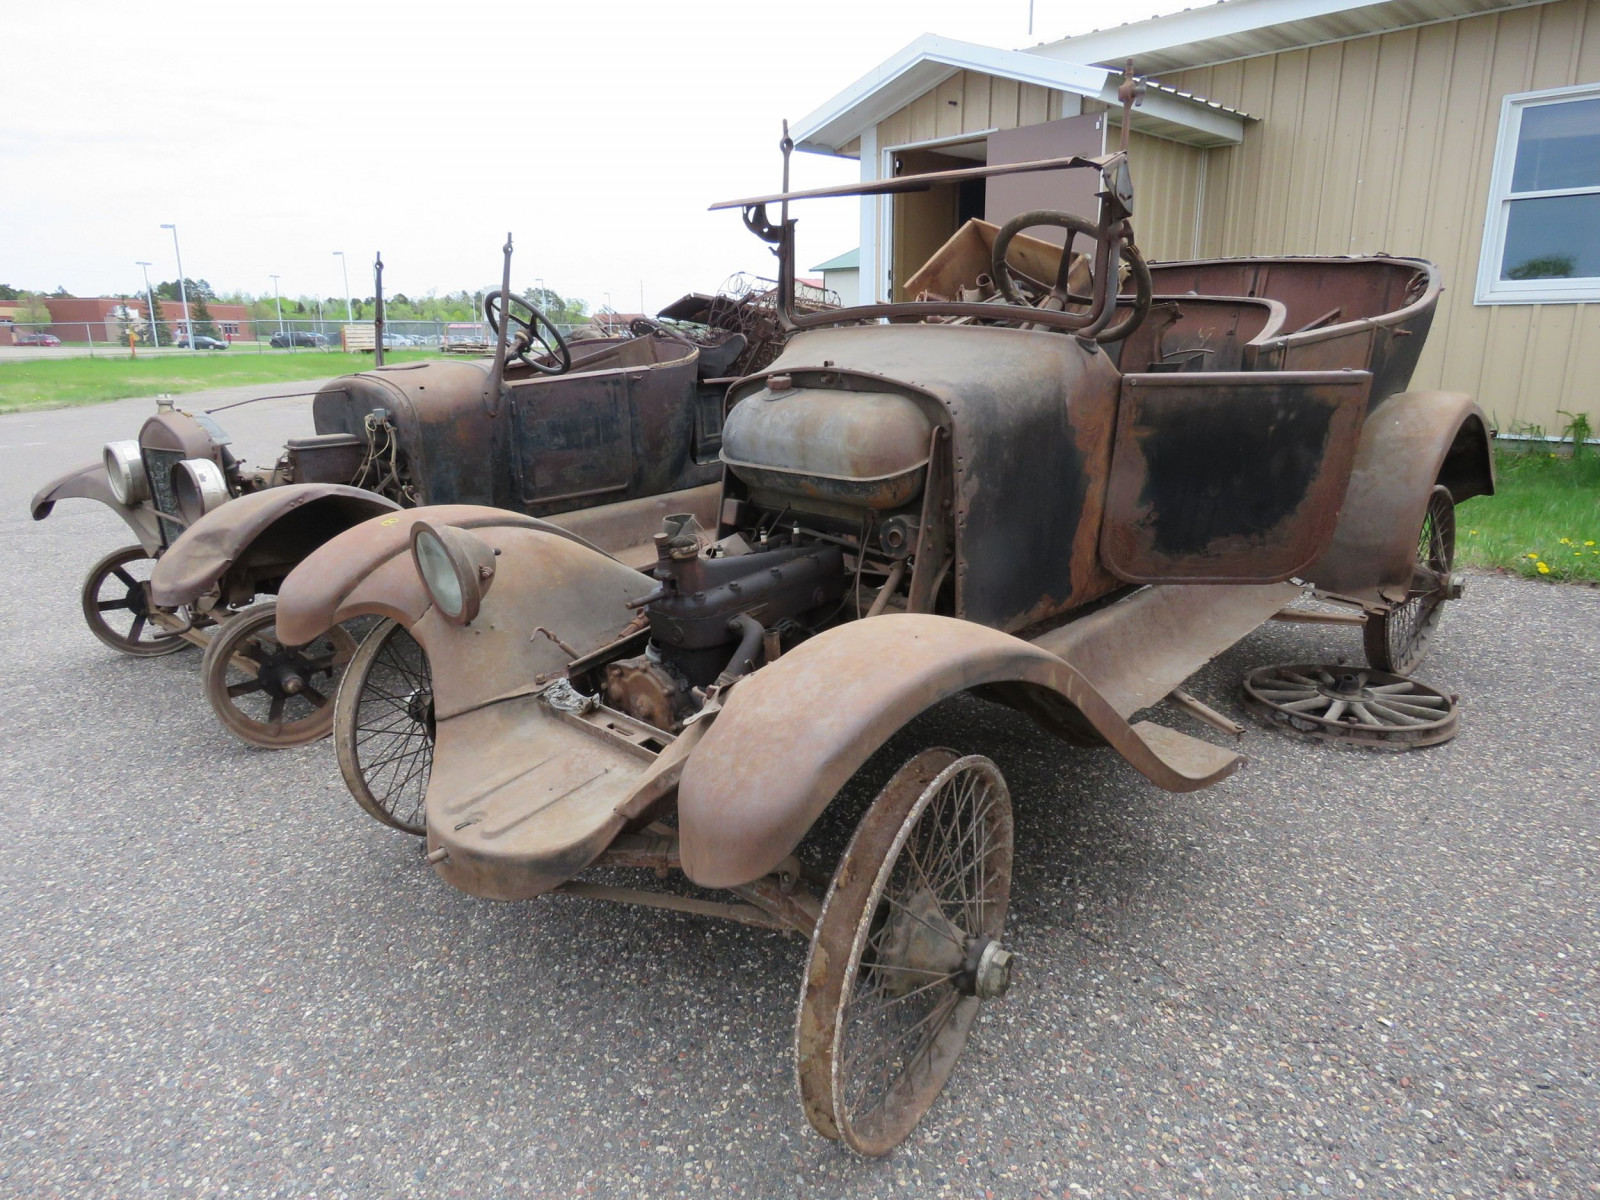 1925 Overland Touring Car for Project or Parts - Image 1